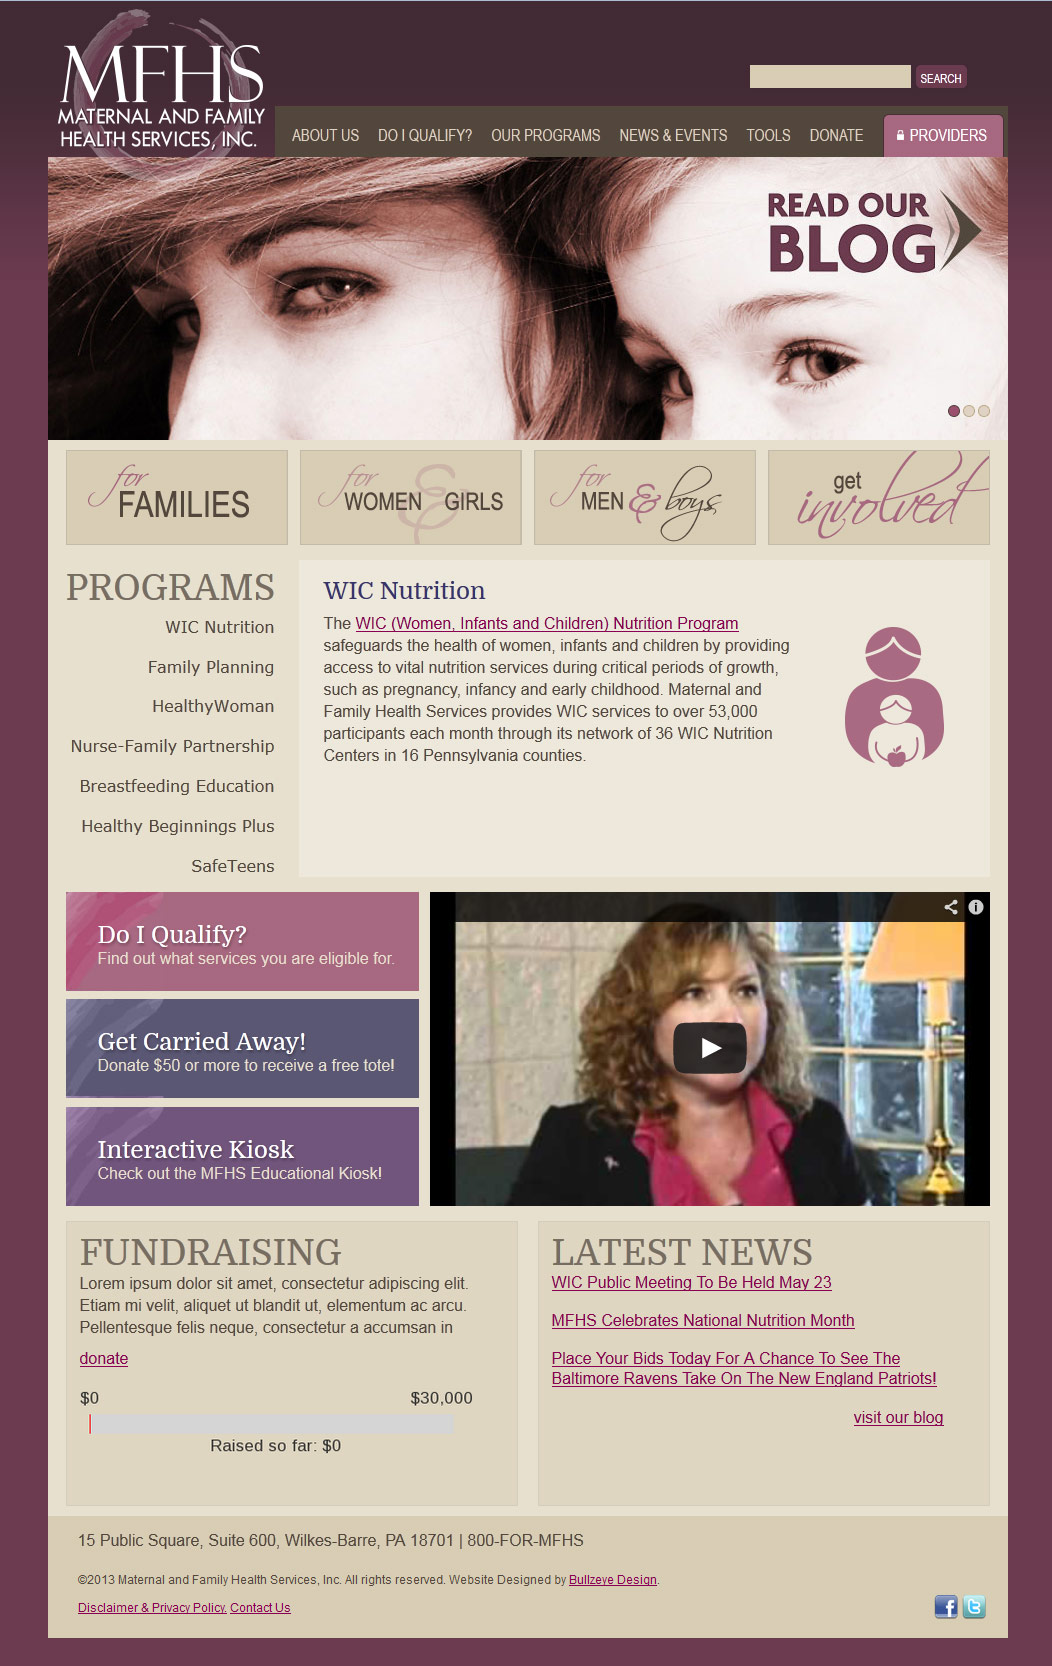 family services website design AFTER